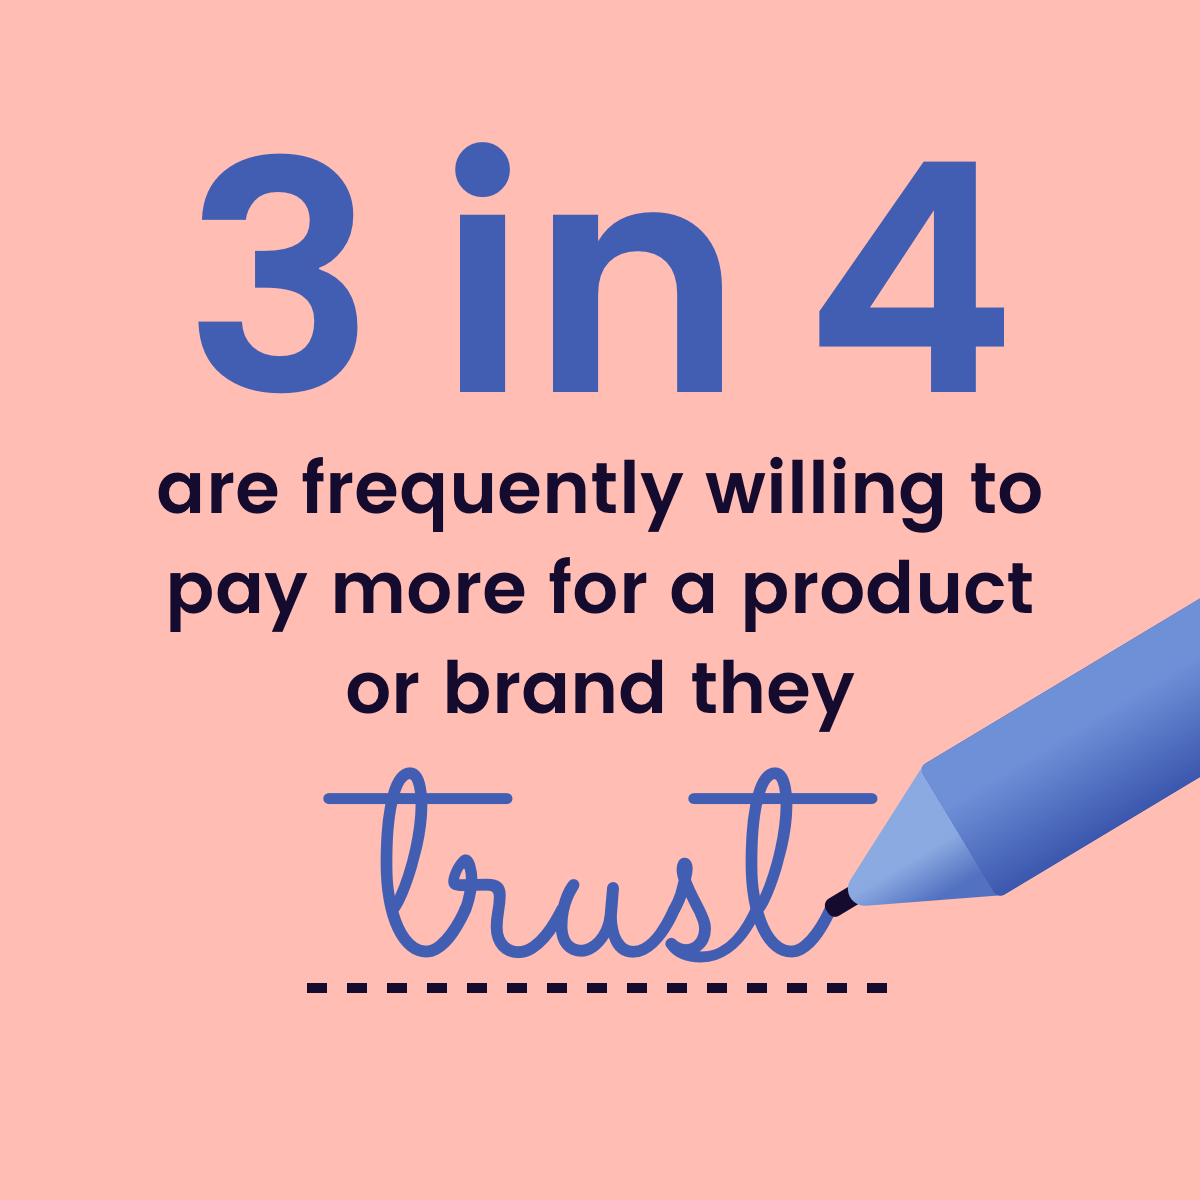 3 in 4 are frequently willing to pay more for brands they trust